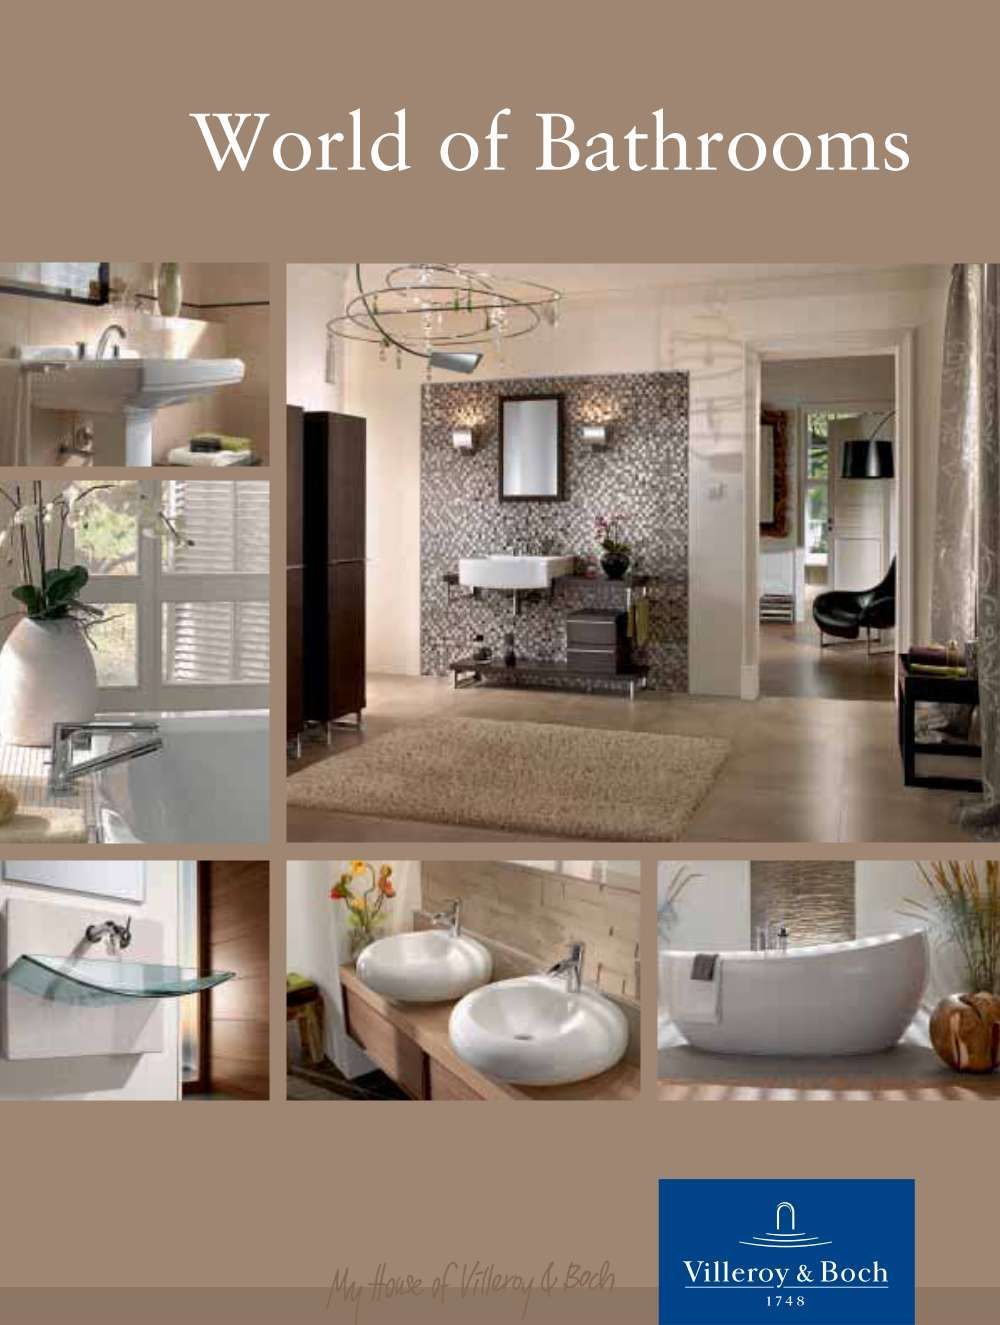 17 Best images about Villeroy   Boch Bathrooms   Aquarooms on Pinterest    Small bathroom remodeling  Toilets and Vanity units. 17 Best images about Villeroy   Boch Bathrooms   Aquarooms on